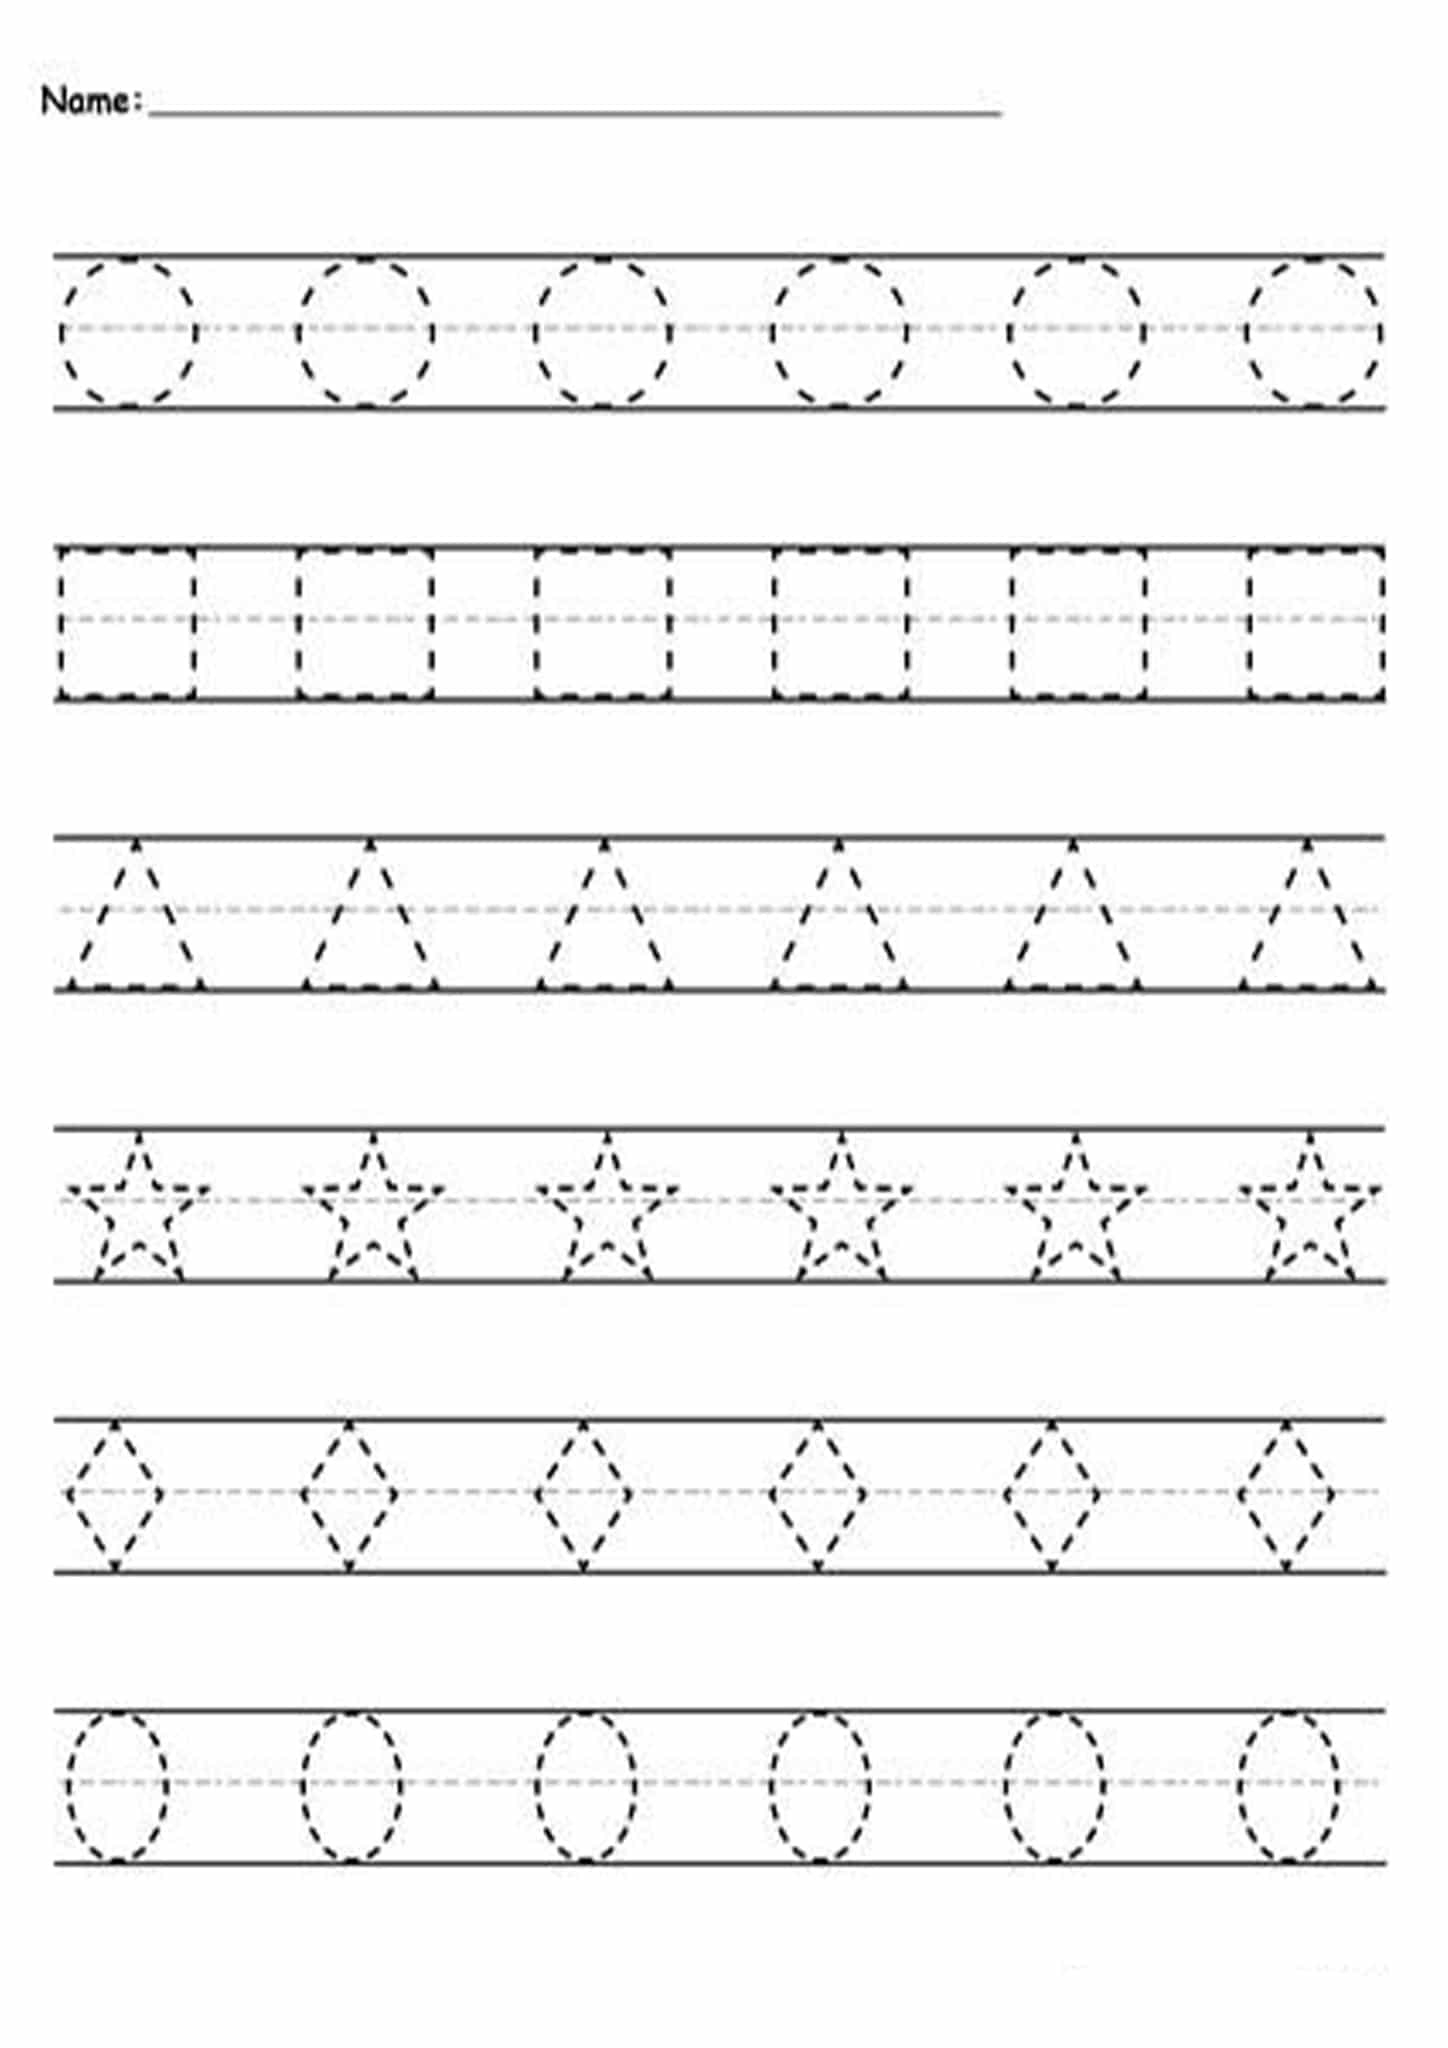 Tracing Worksheets For 3 Year Olds Shapes